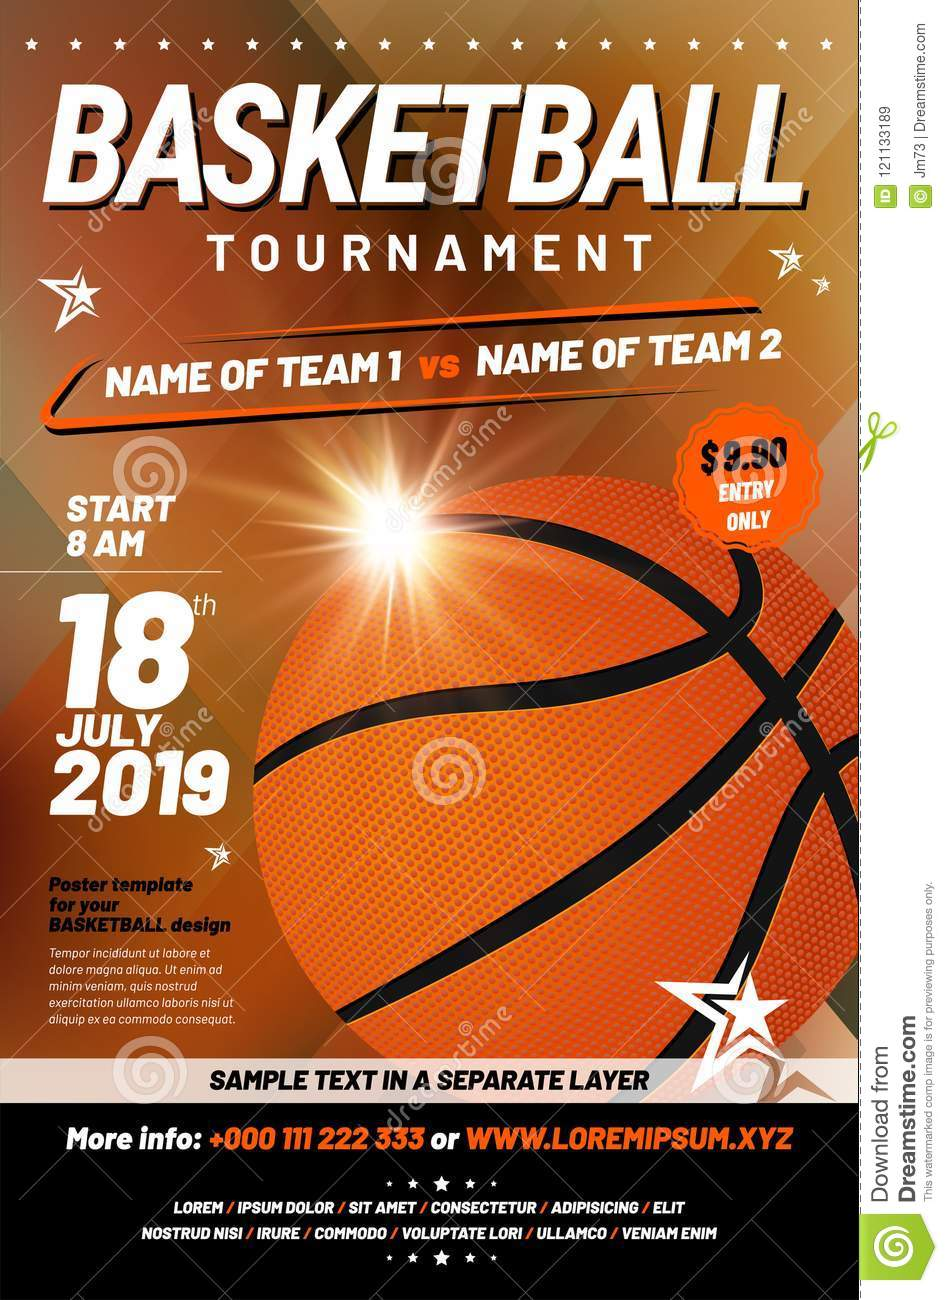 Basketball Tournament Poster Template With Sample Text Stock ...